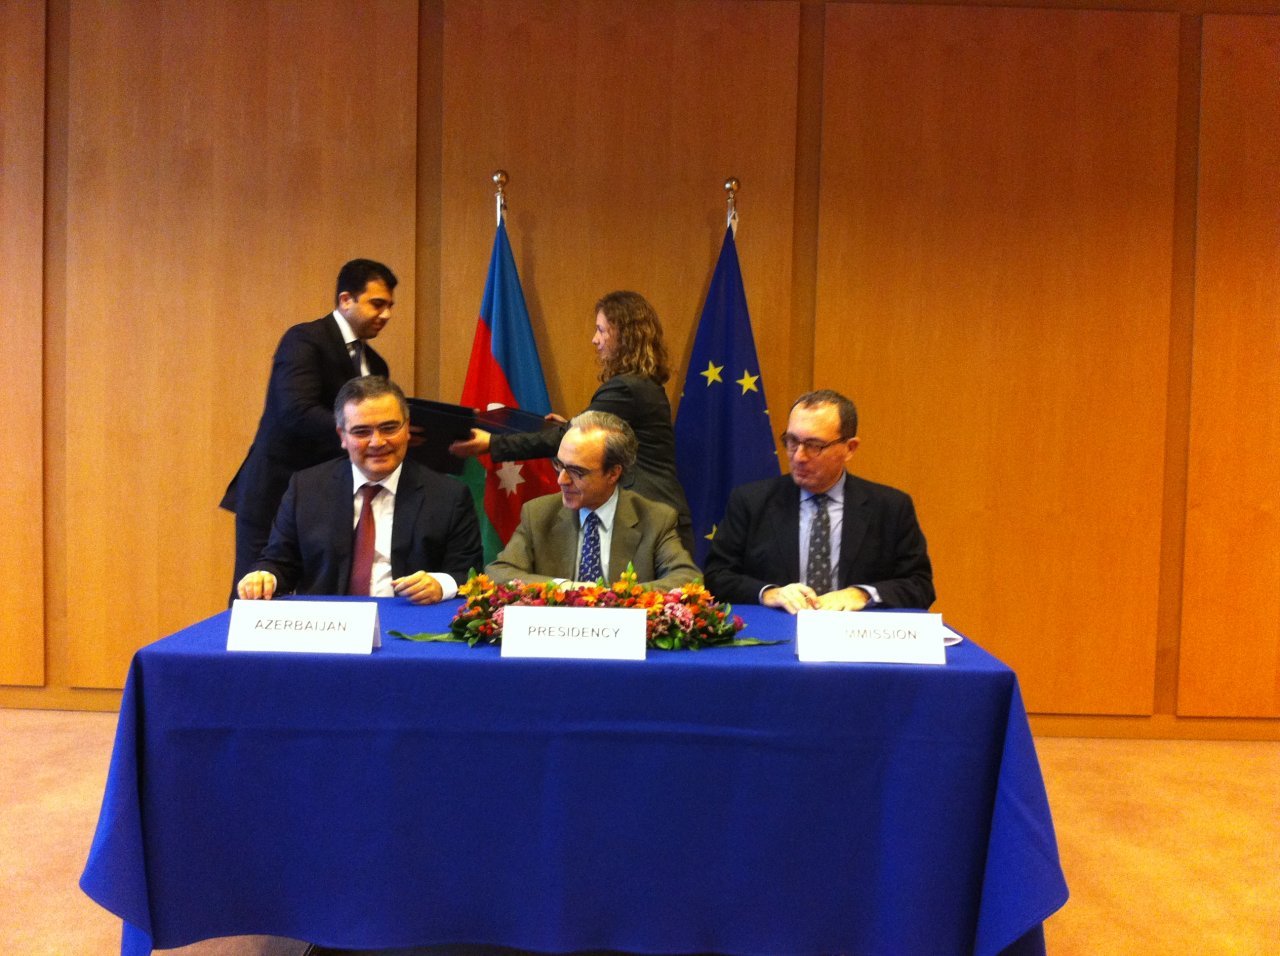 Photo: Signature of  readmission agreement very concrete step forward in EU-Azerbaijani relations / Politics